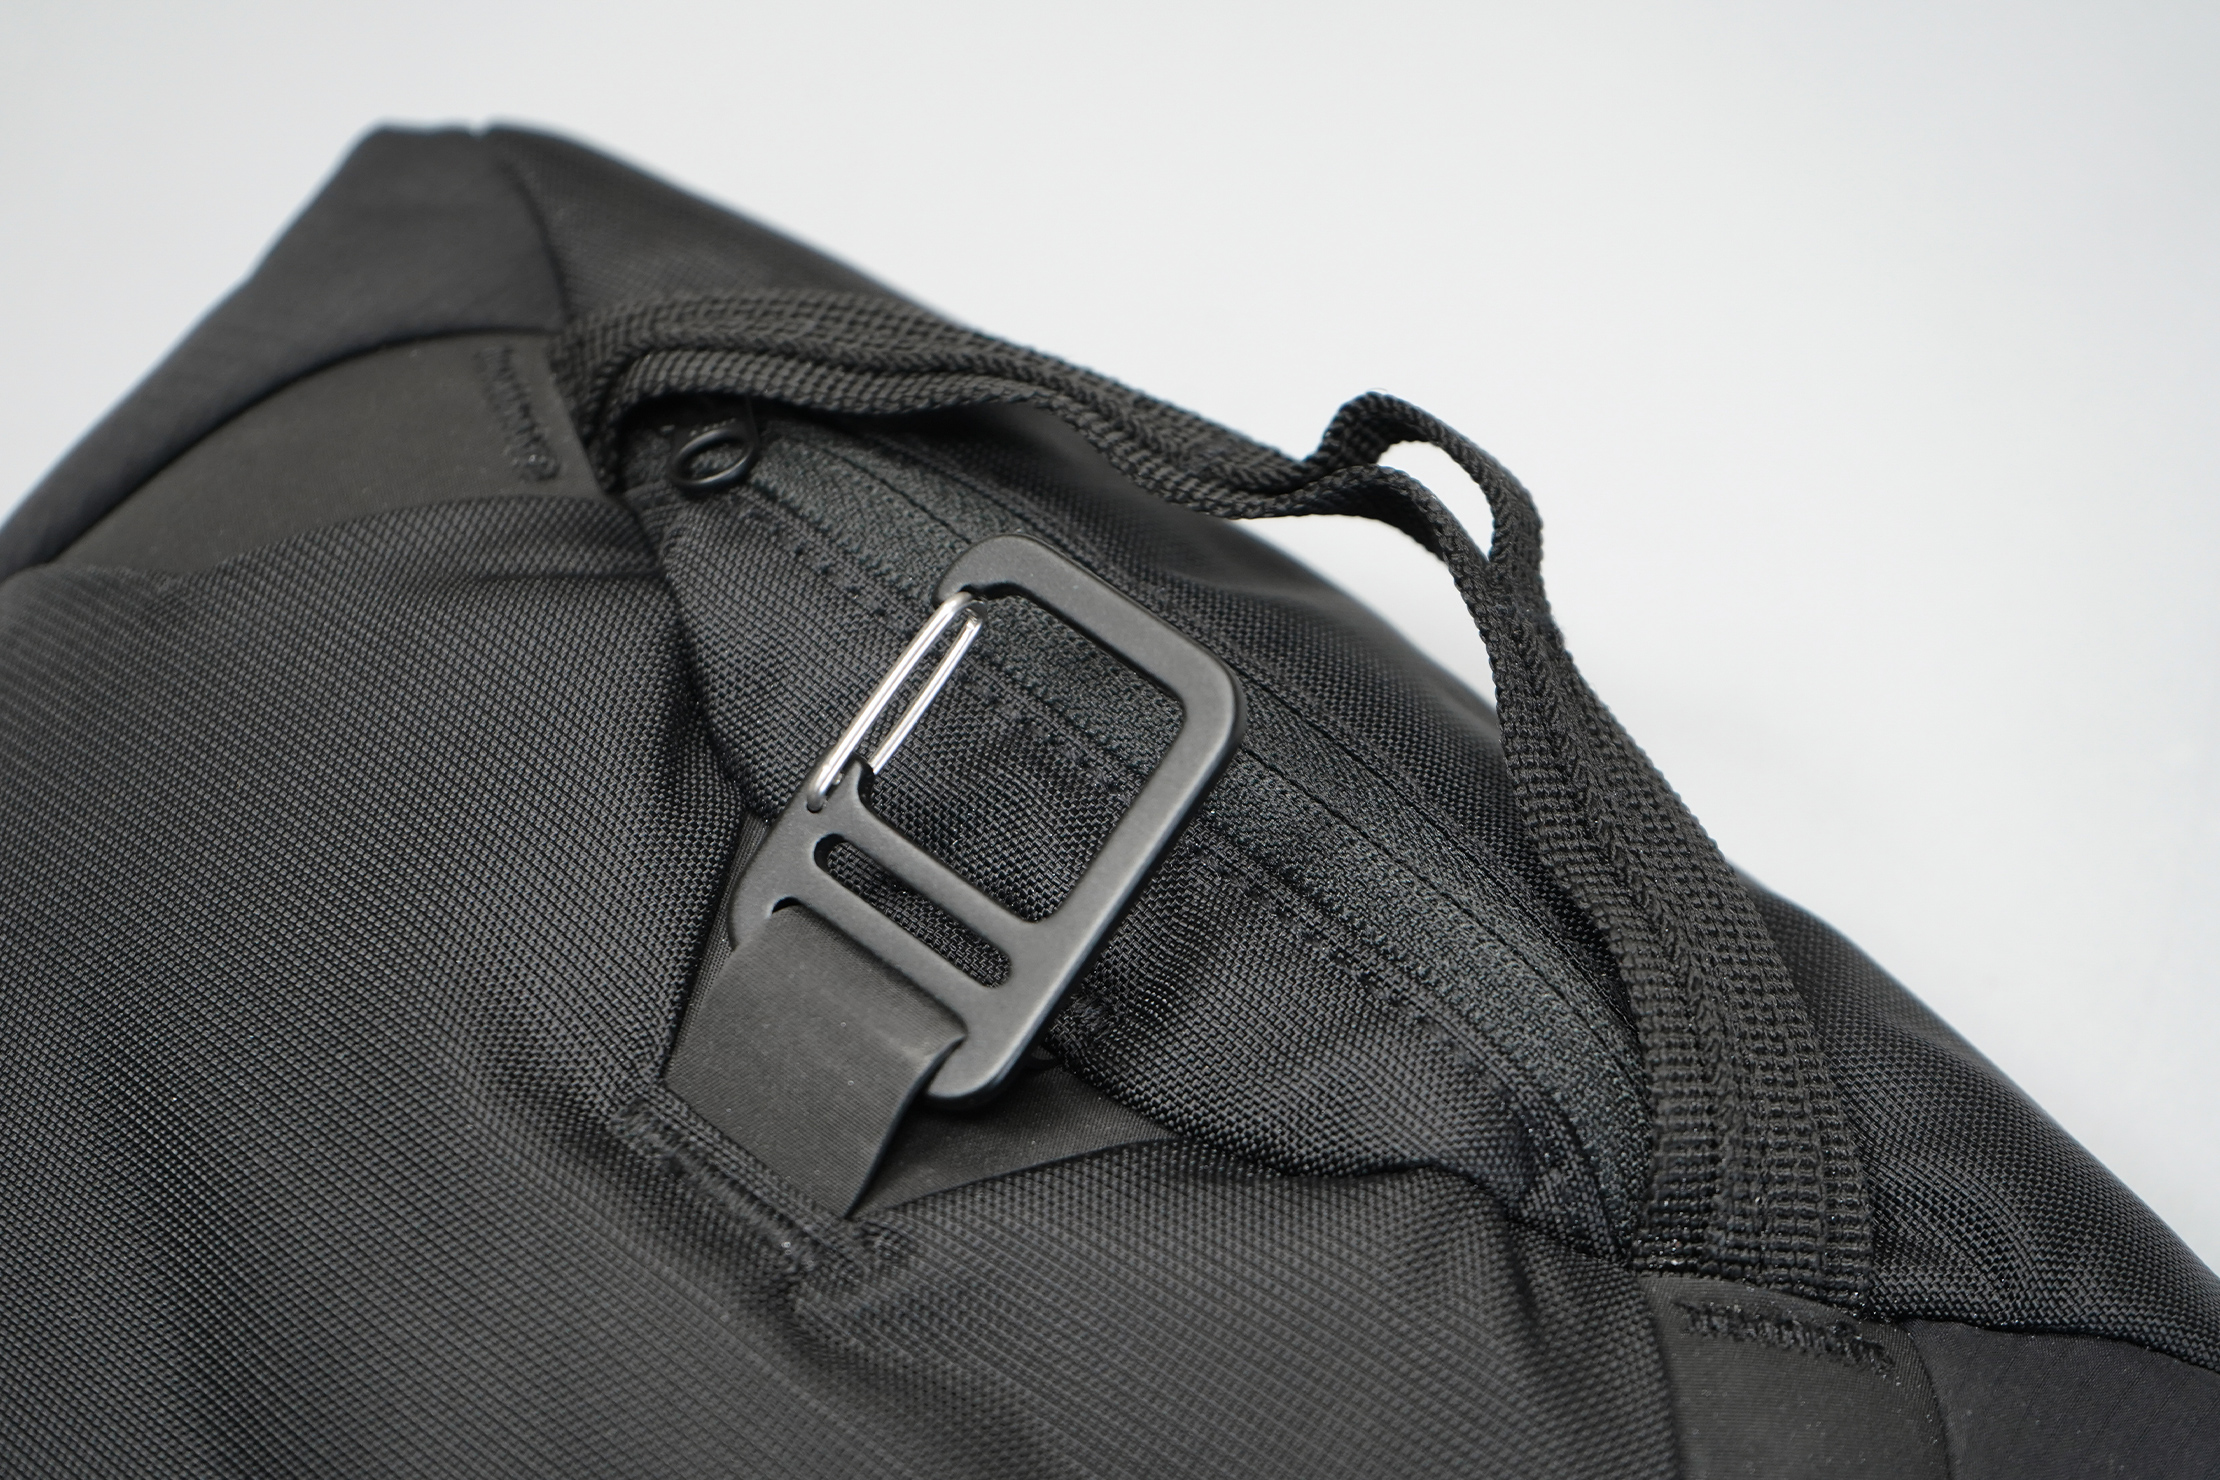 Matador Camera Base Layer 2.0 | There's a top handle and gatekeeper-style clip at the back.